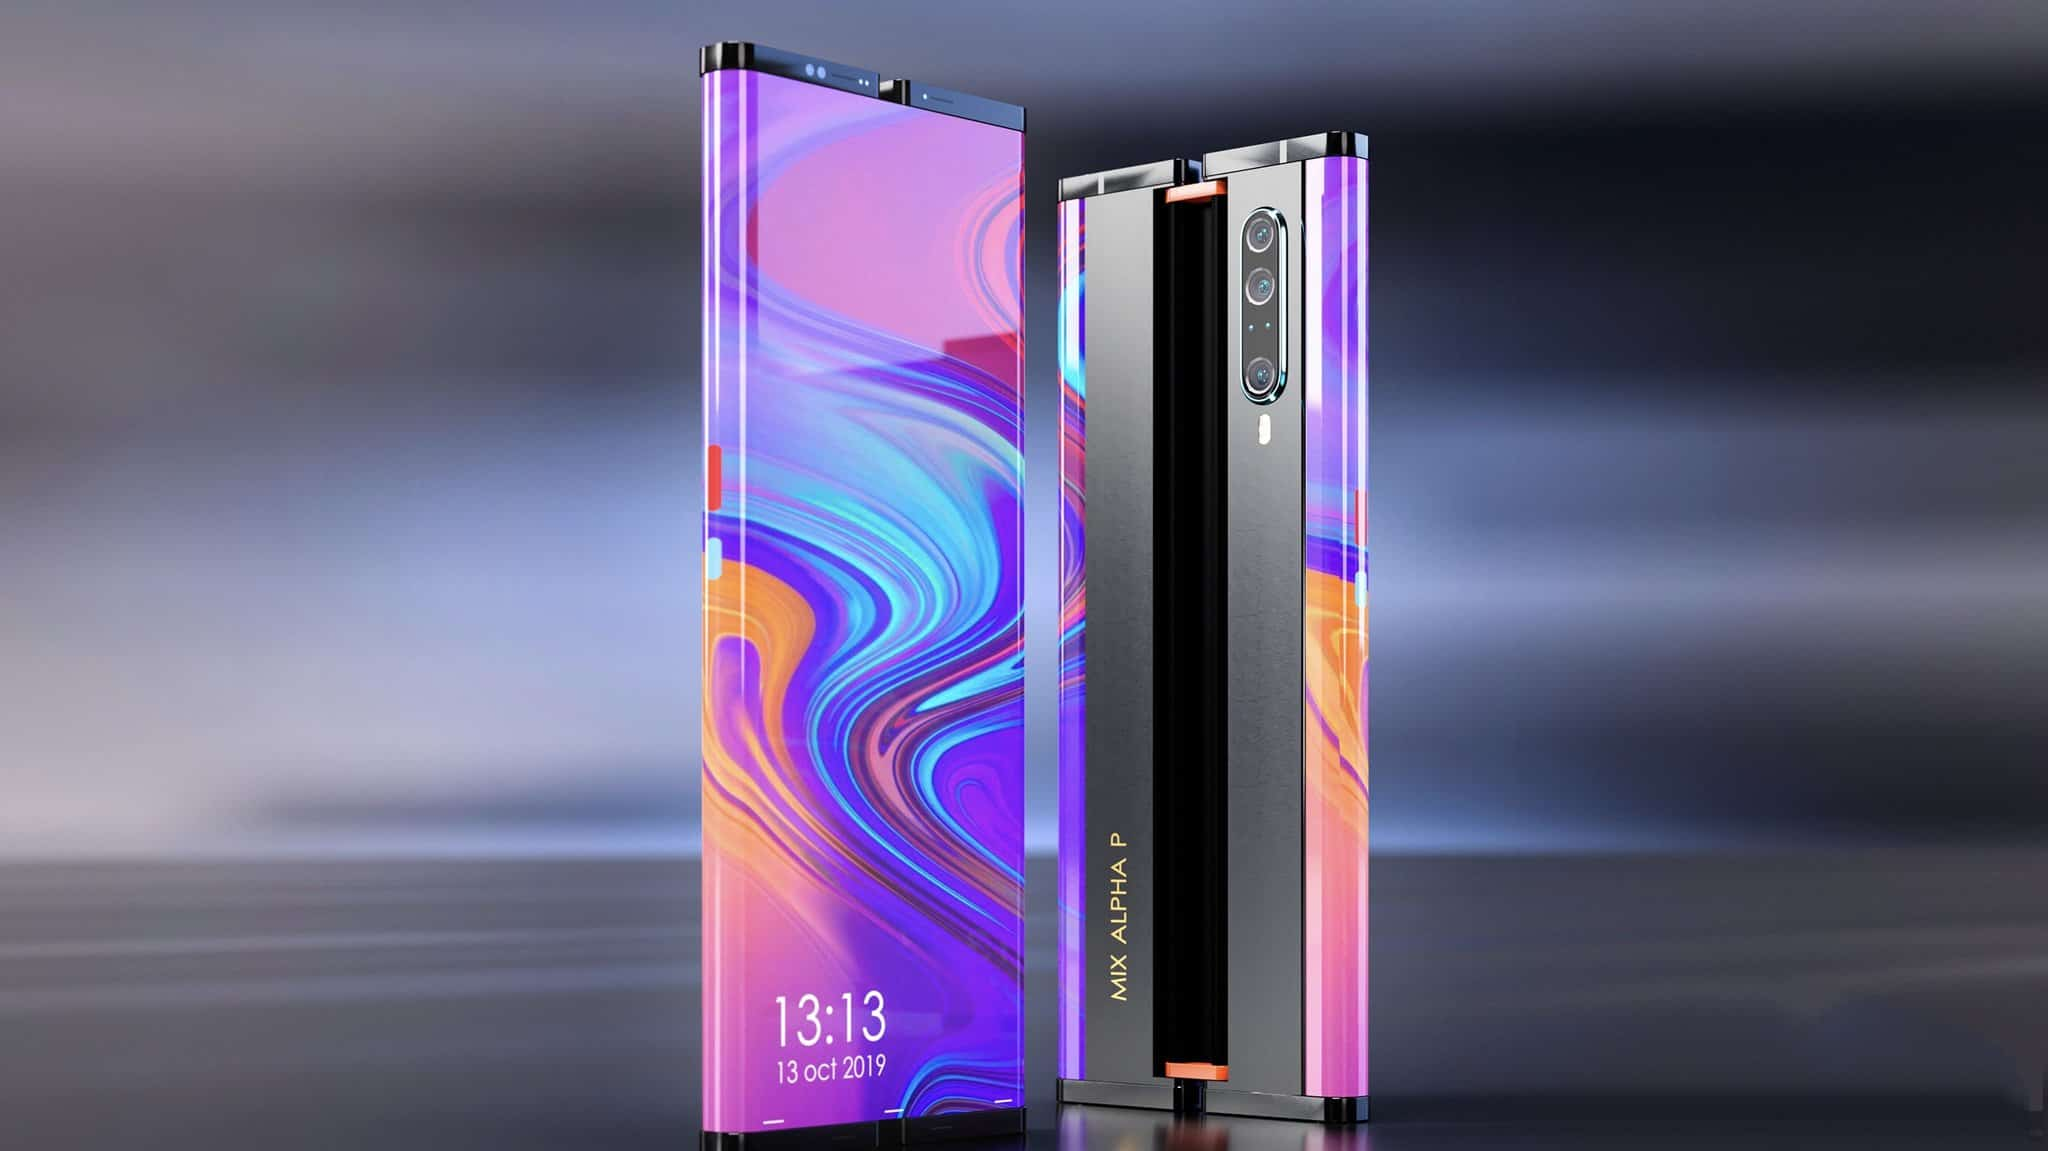 xiaomi new concept phone emerging tech